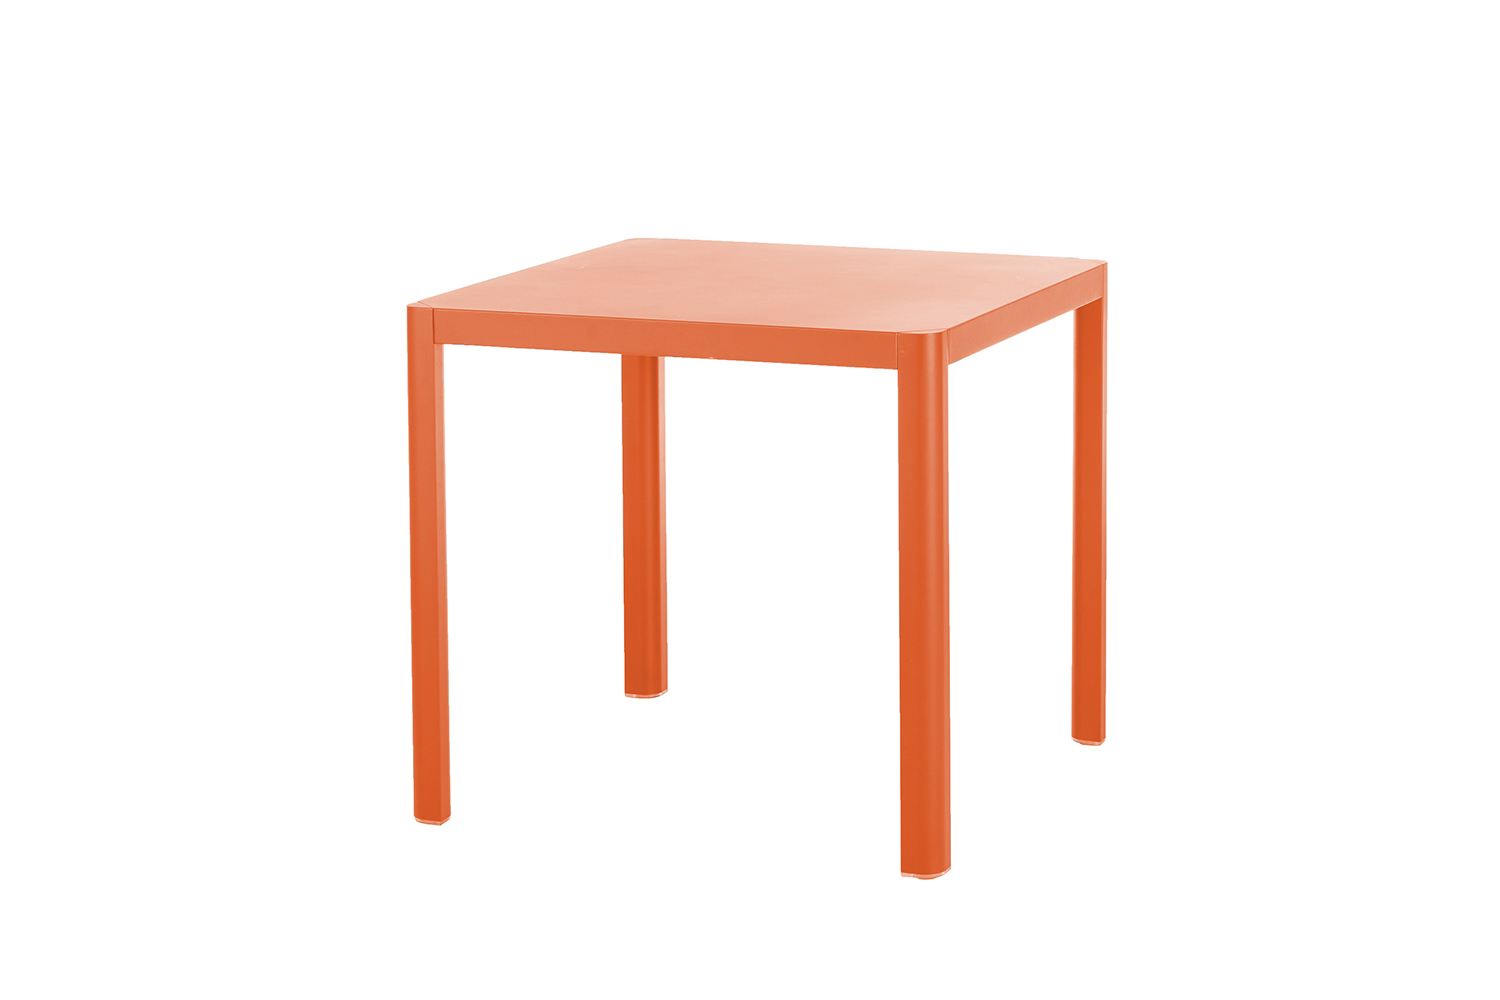 Kingston Tisch 80 x 80 cm (Aluminium ? neon orange)